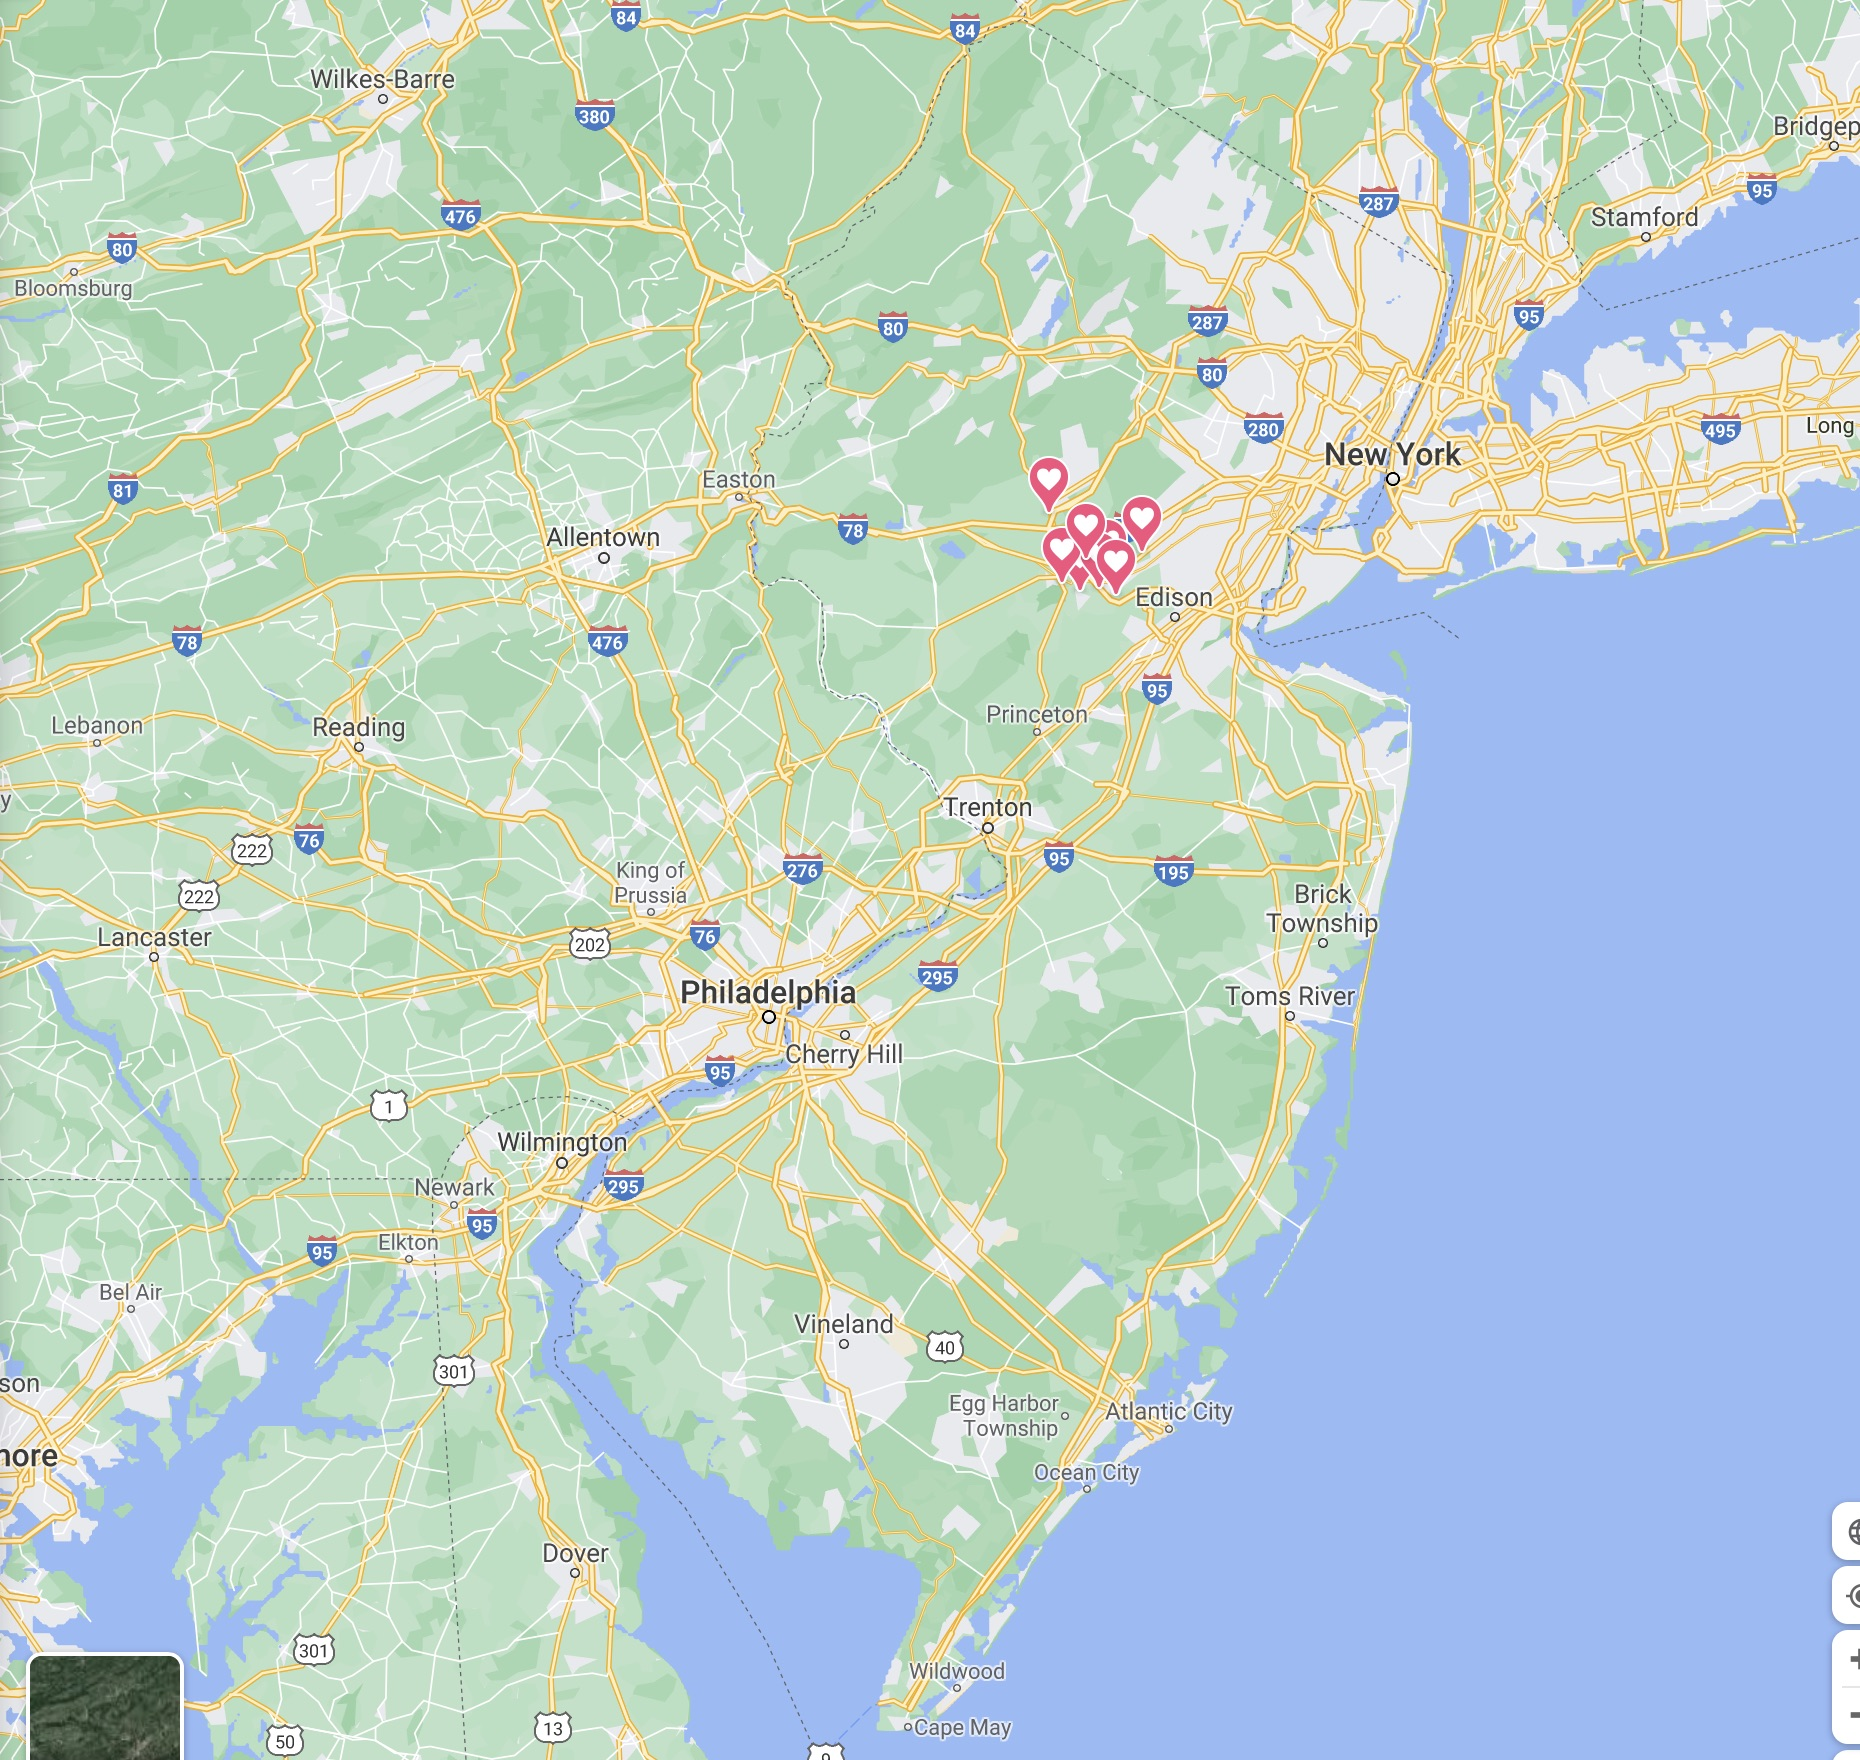 Map of NJ with pins in locations in the center of the state.